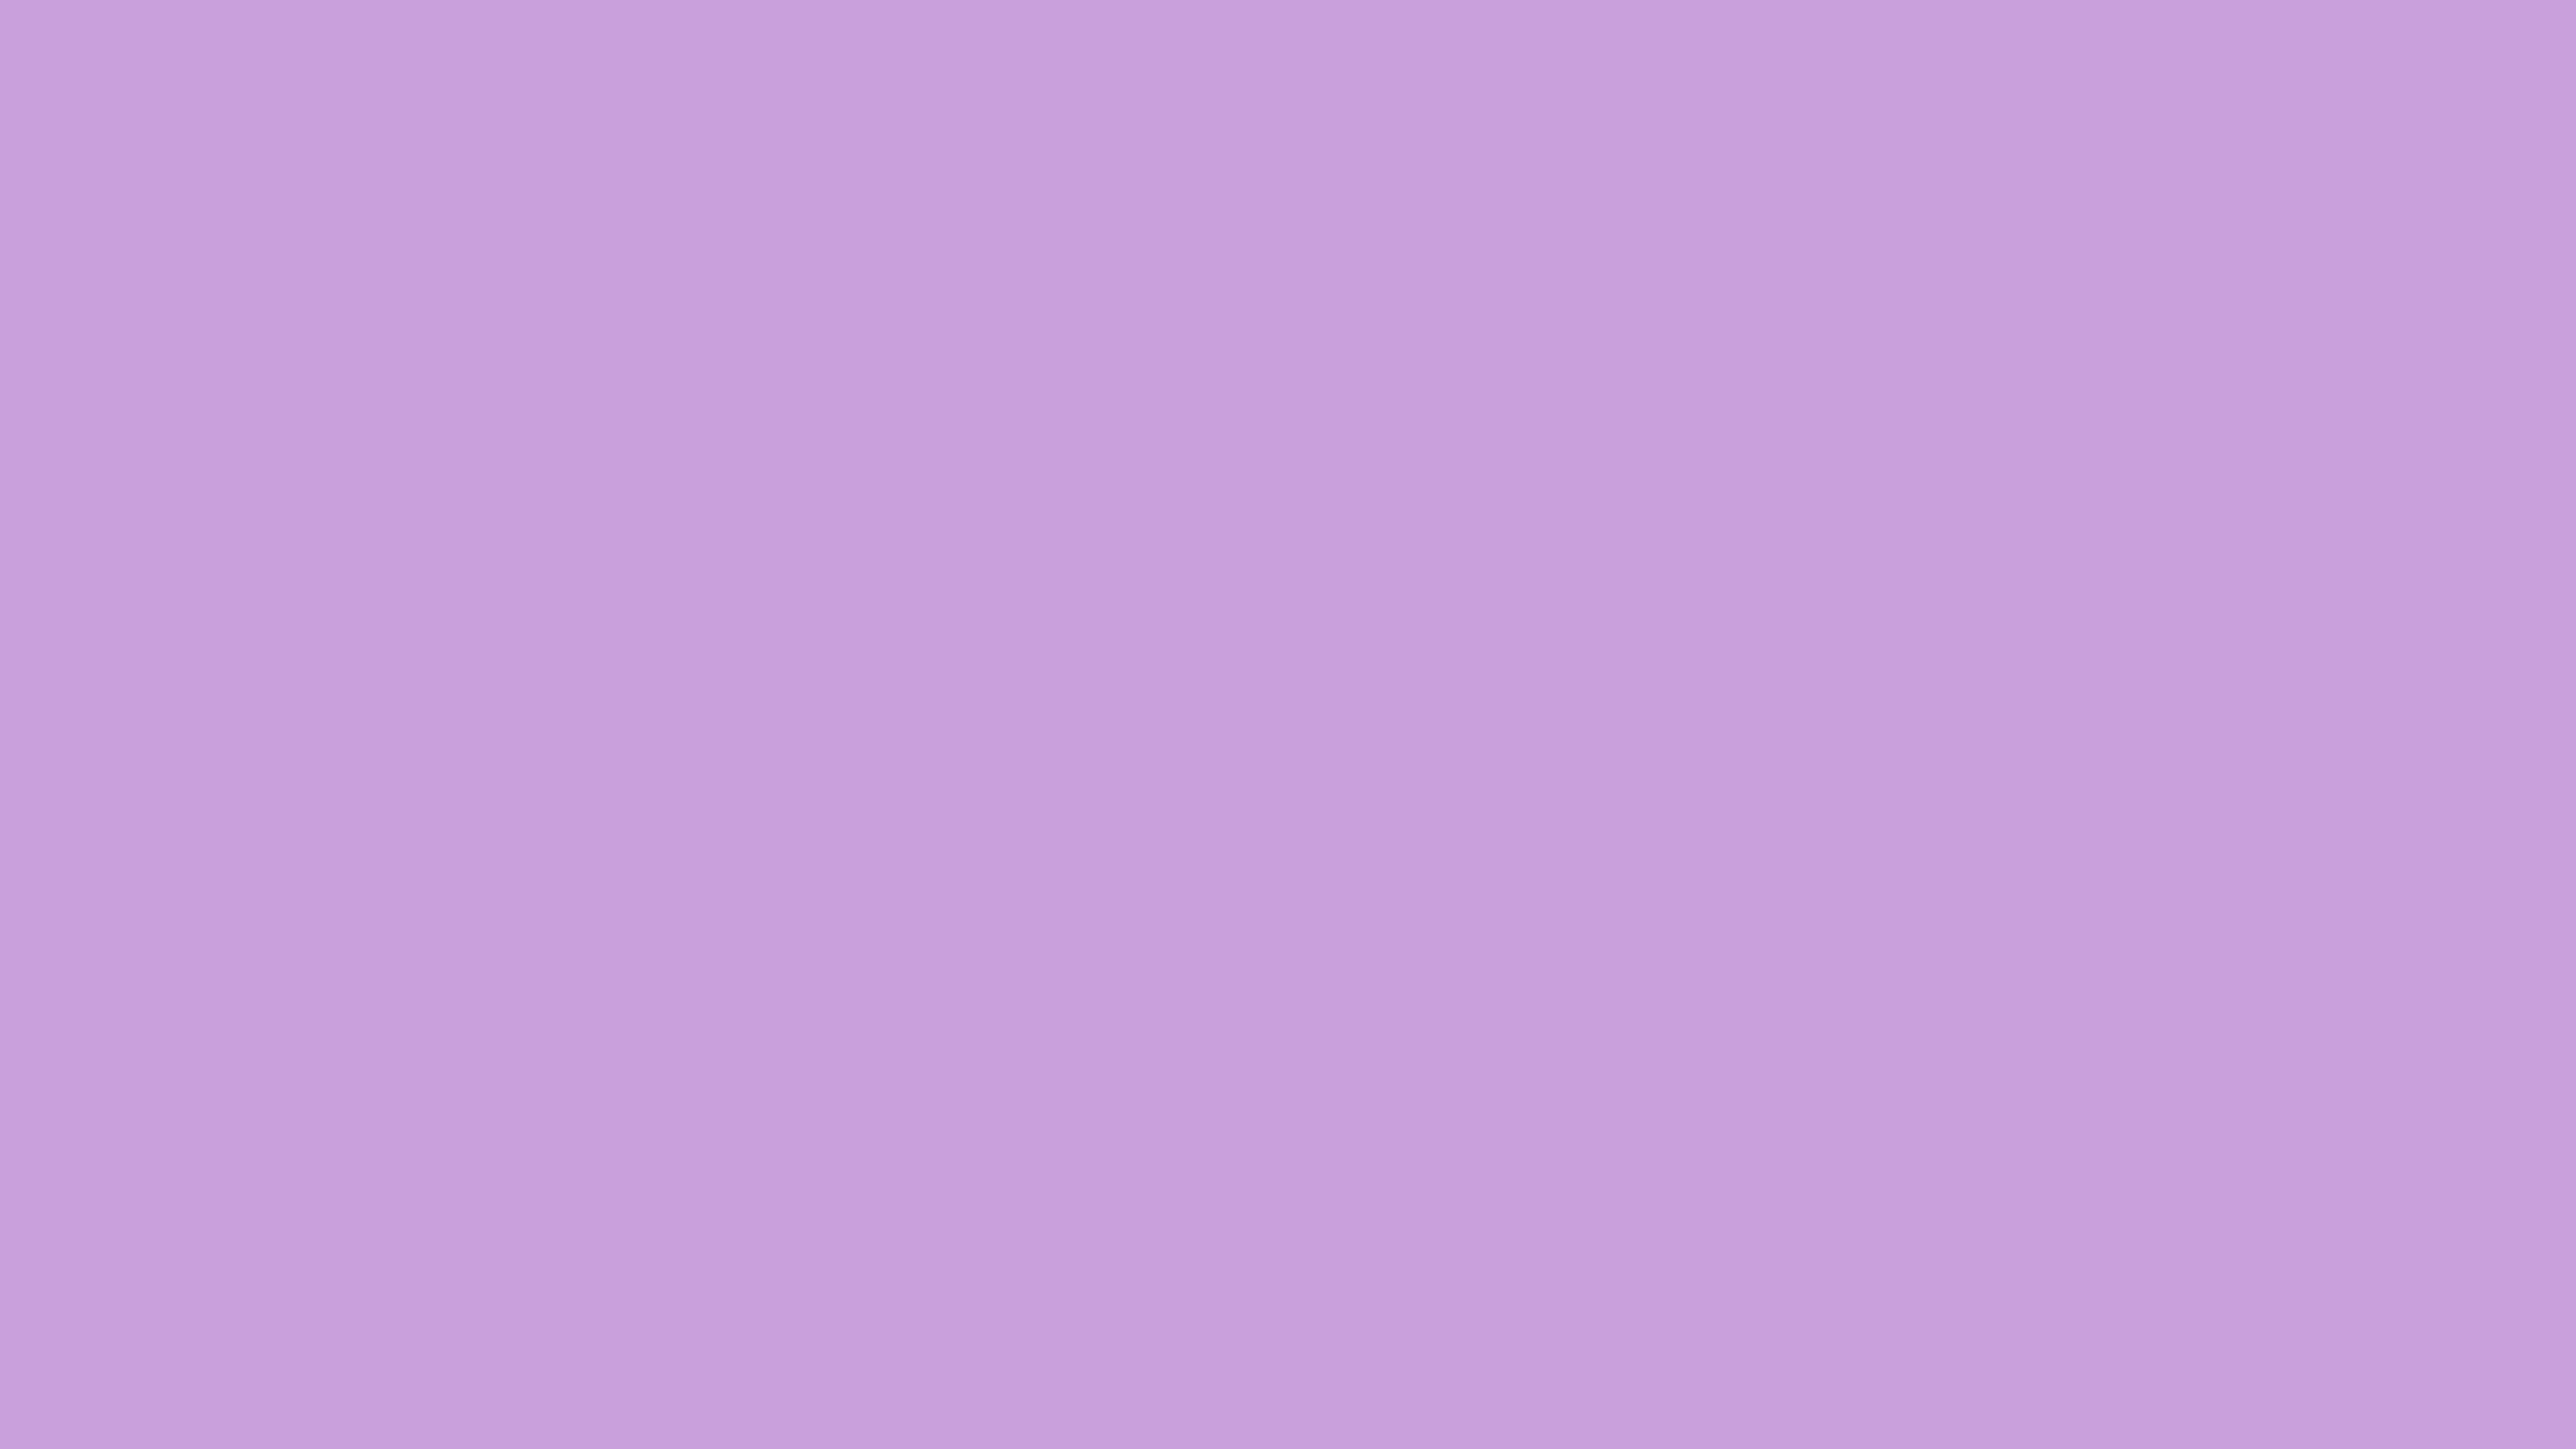 5120x2880 Wisteria Solid Color Background